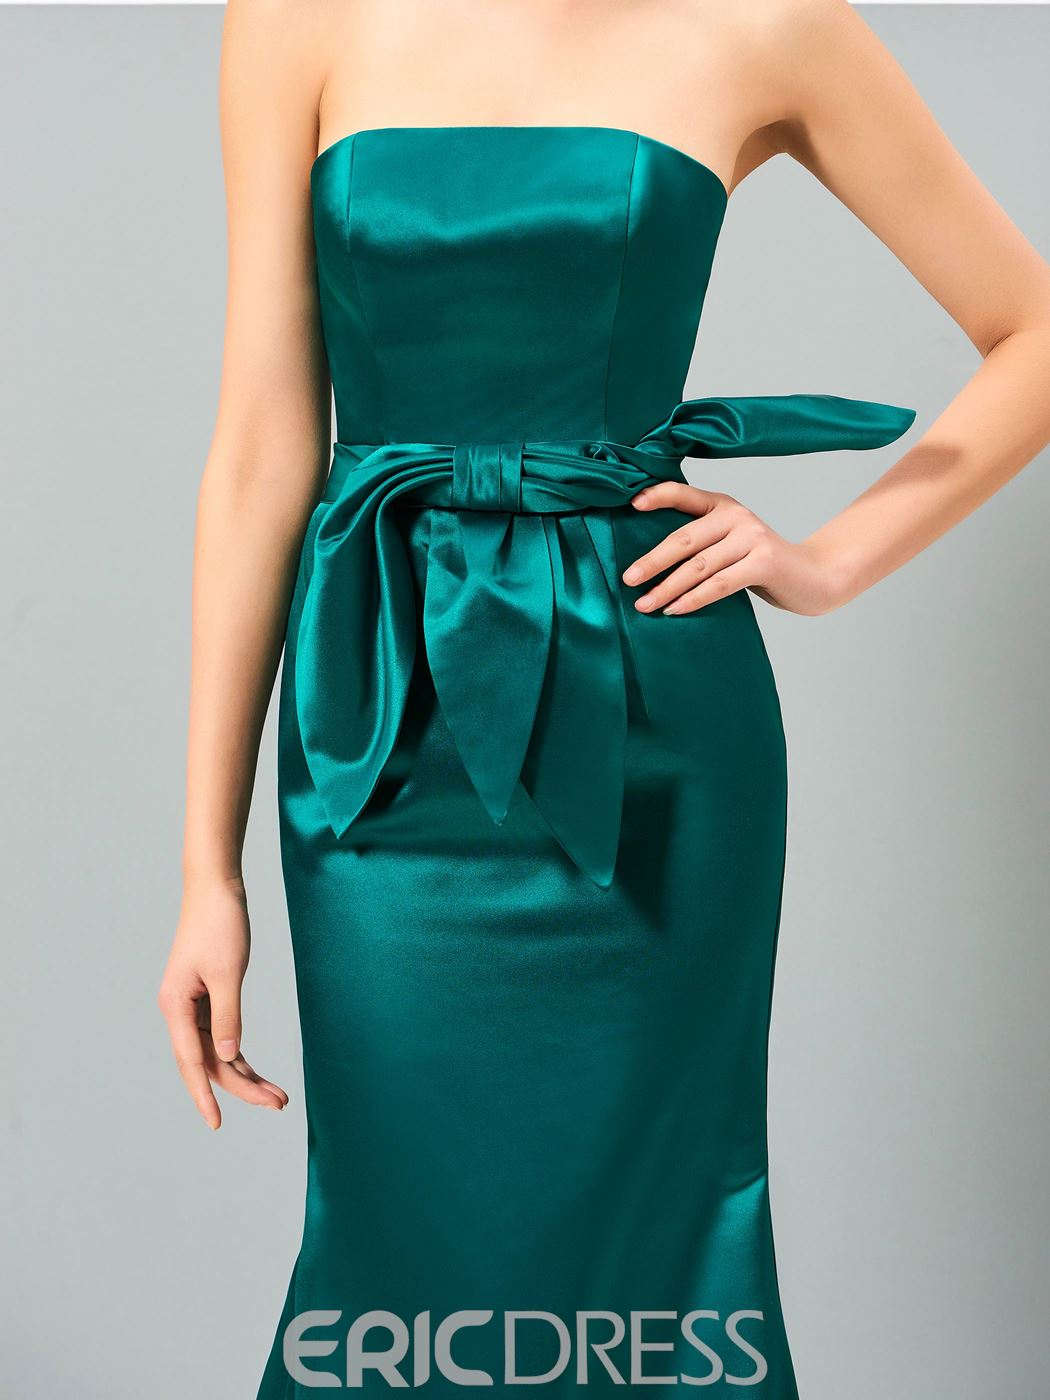 Ericdress Strapless Bowknot Mermaid Evening Dress With Court Train